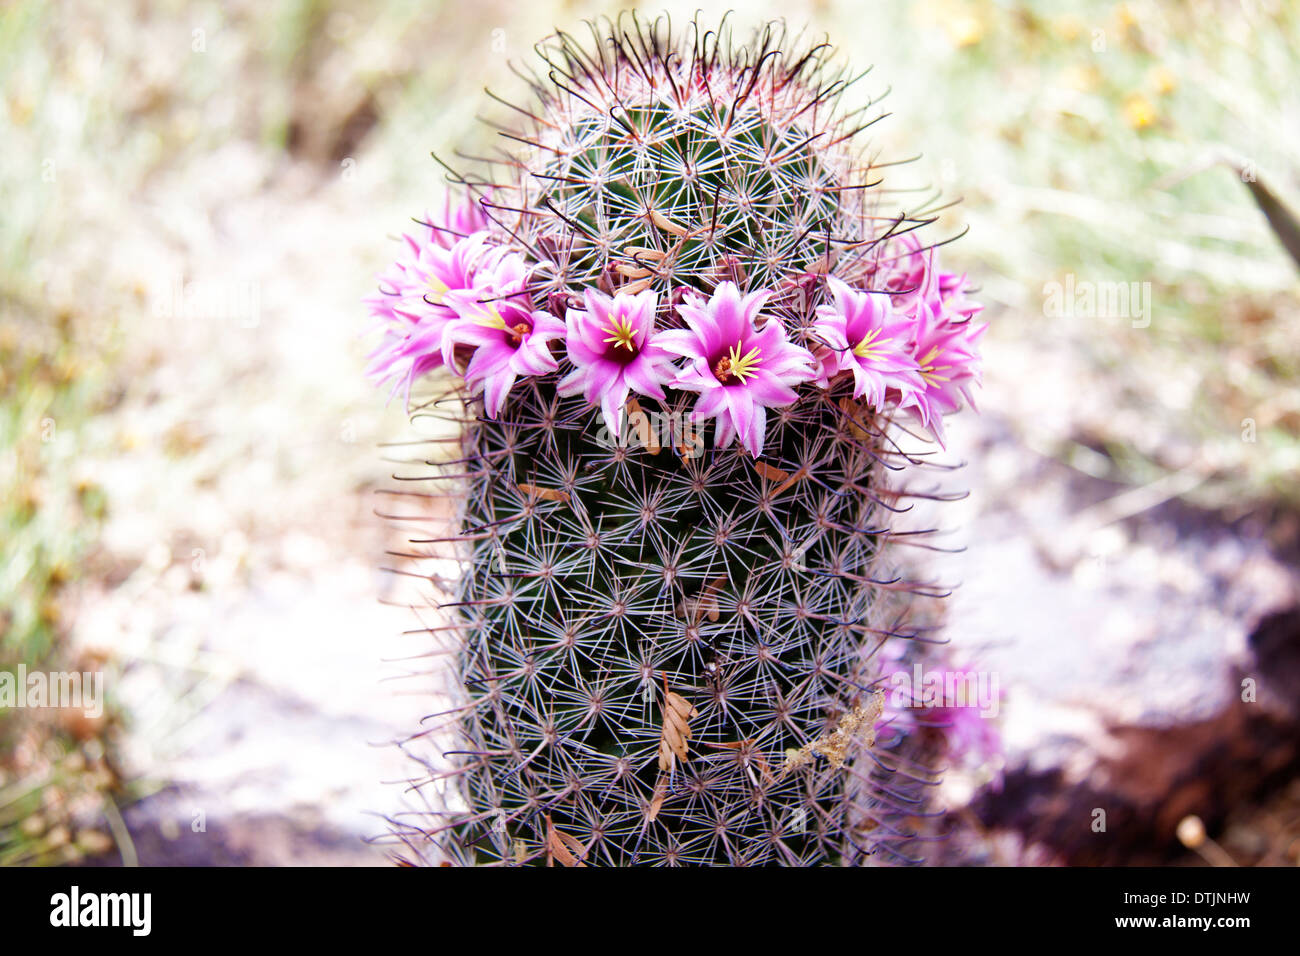 Small Cactus Found In Arizona With A Lovely Rose Pink Color Flowers